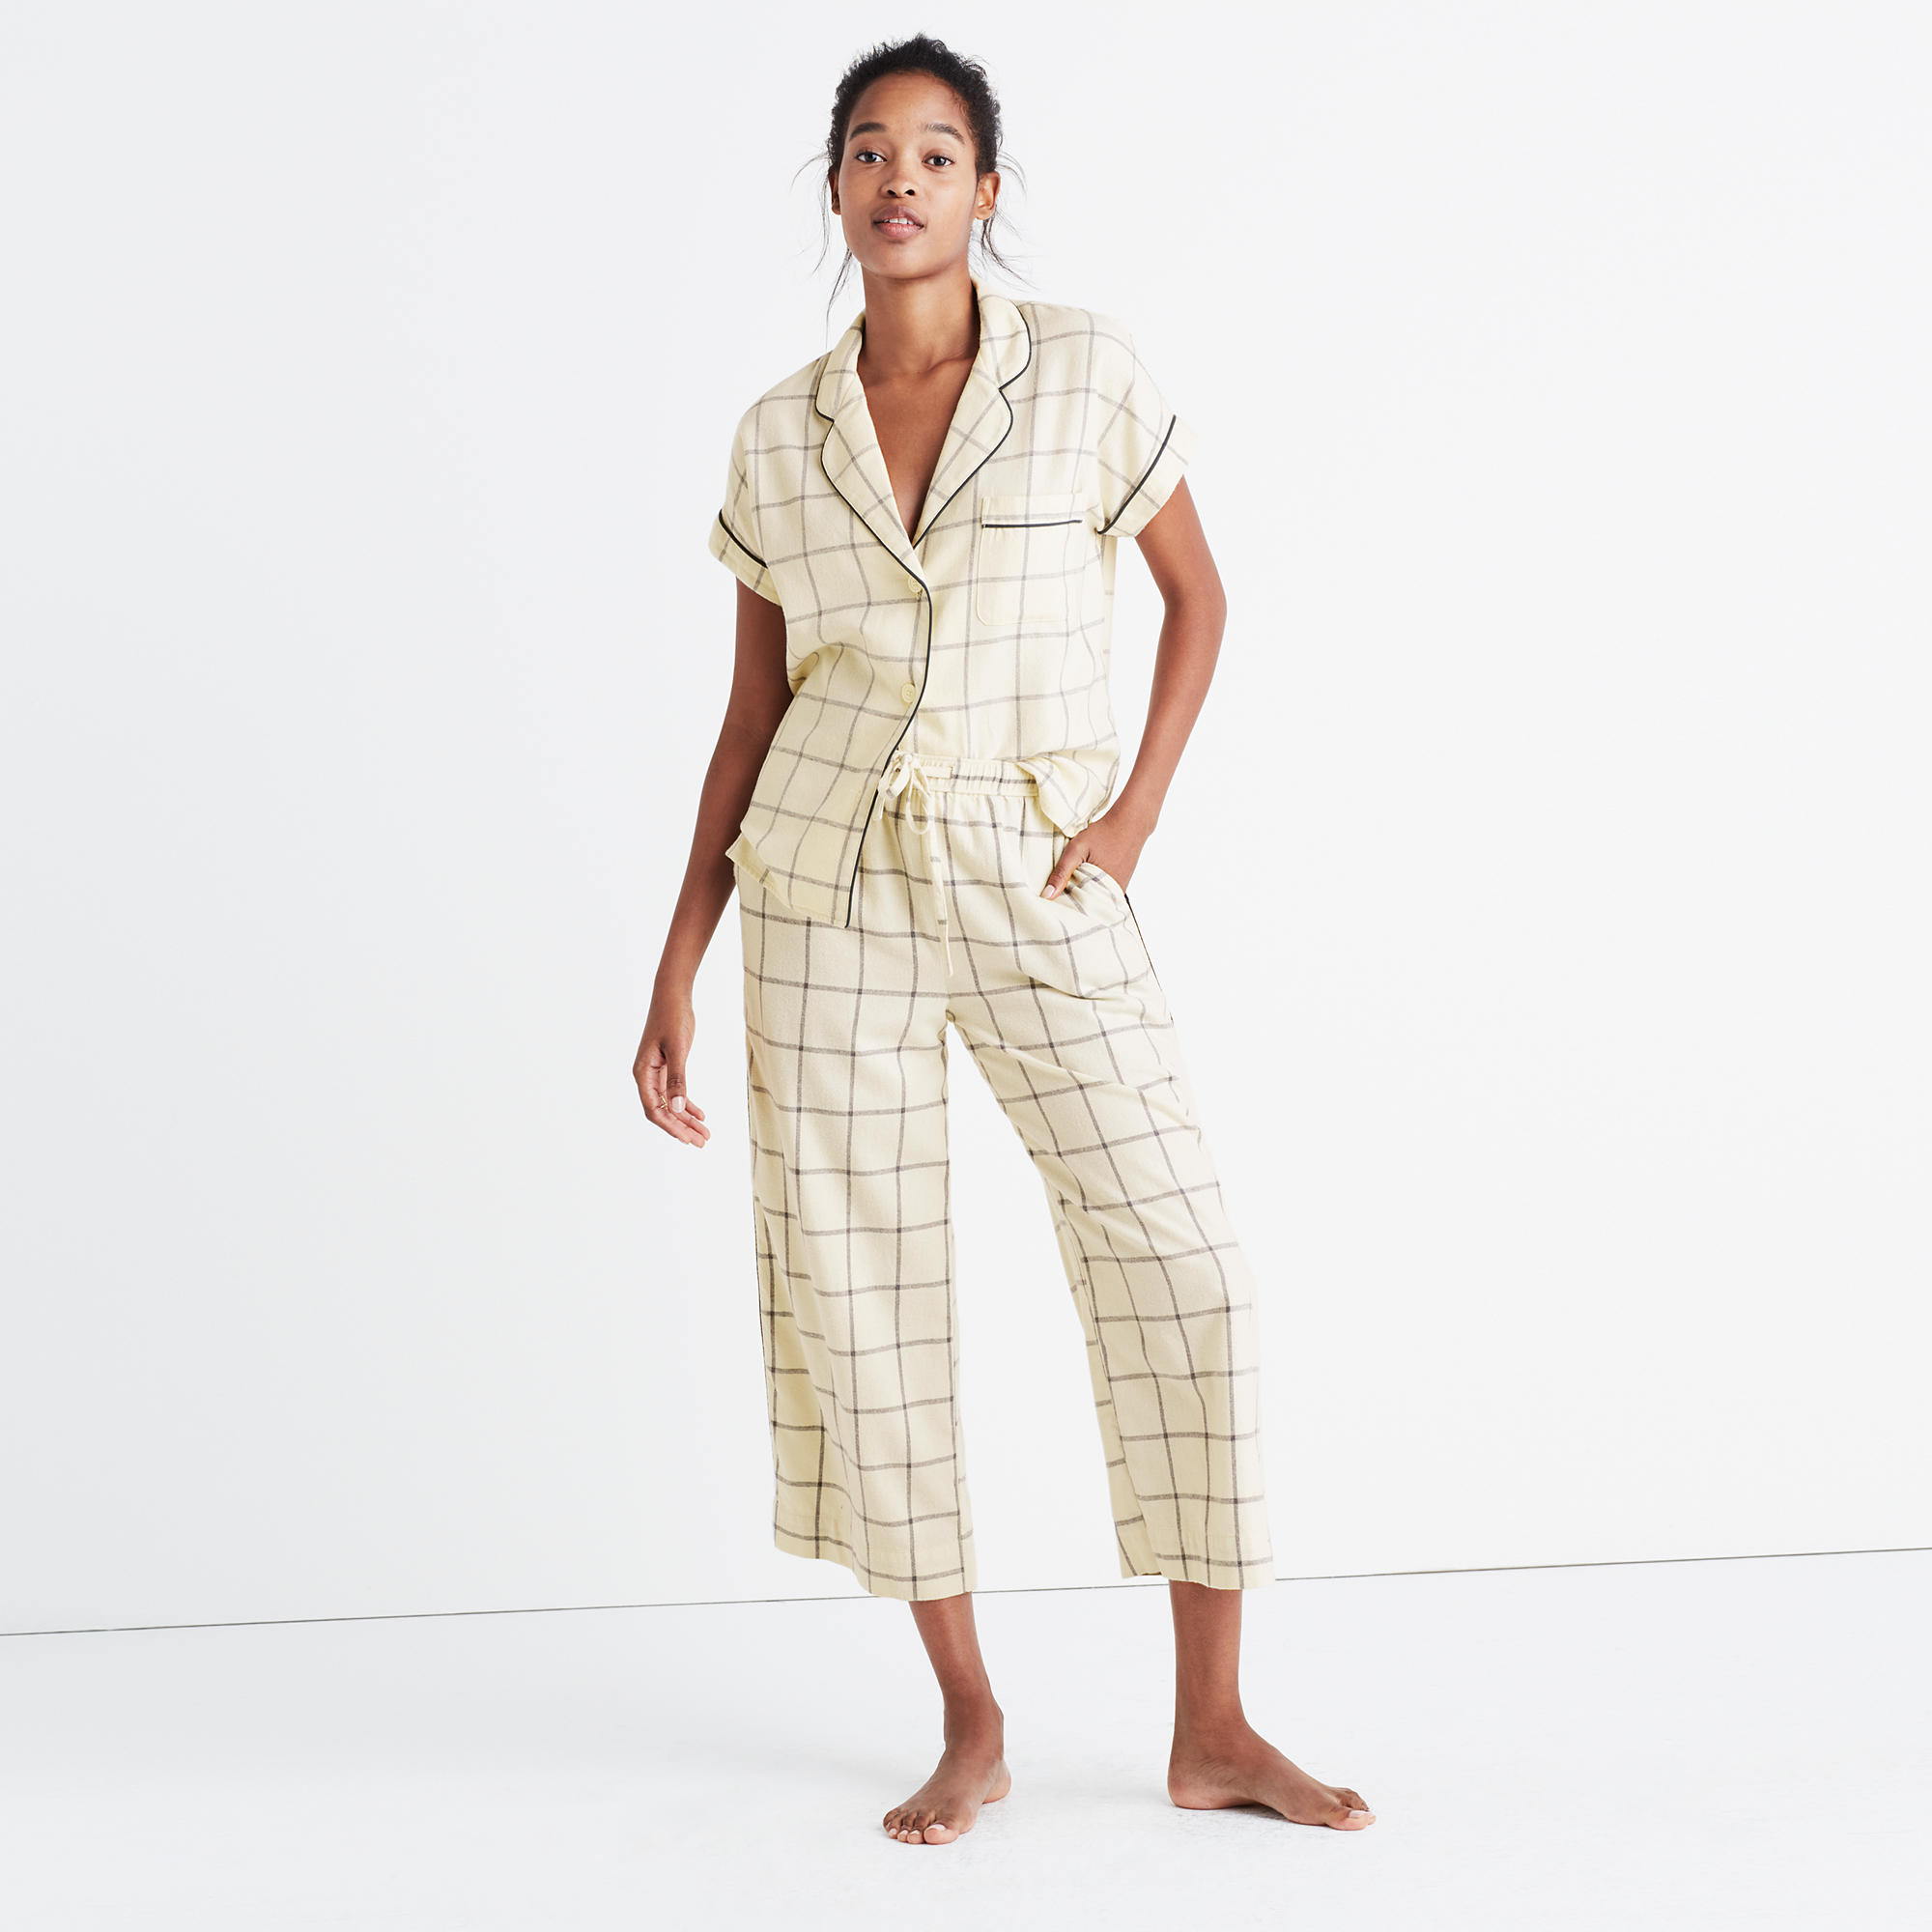 front wrapped most blog woman mom cute neckline includes are on for being and holes nostalgic list in comforter a thermal warm the your comfortable long choice fashion john every thumb pajamas hug guide snap like gift coziest